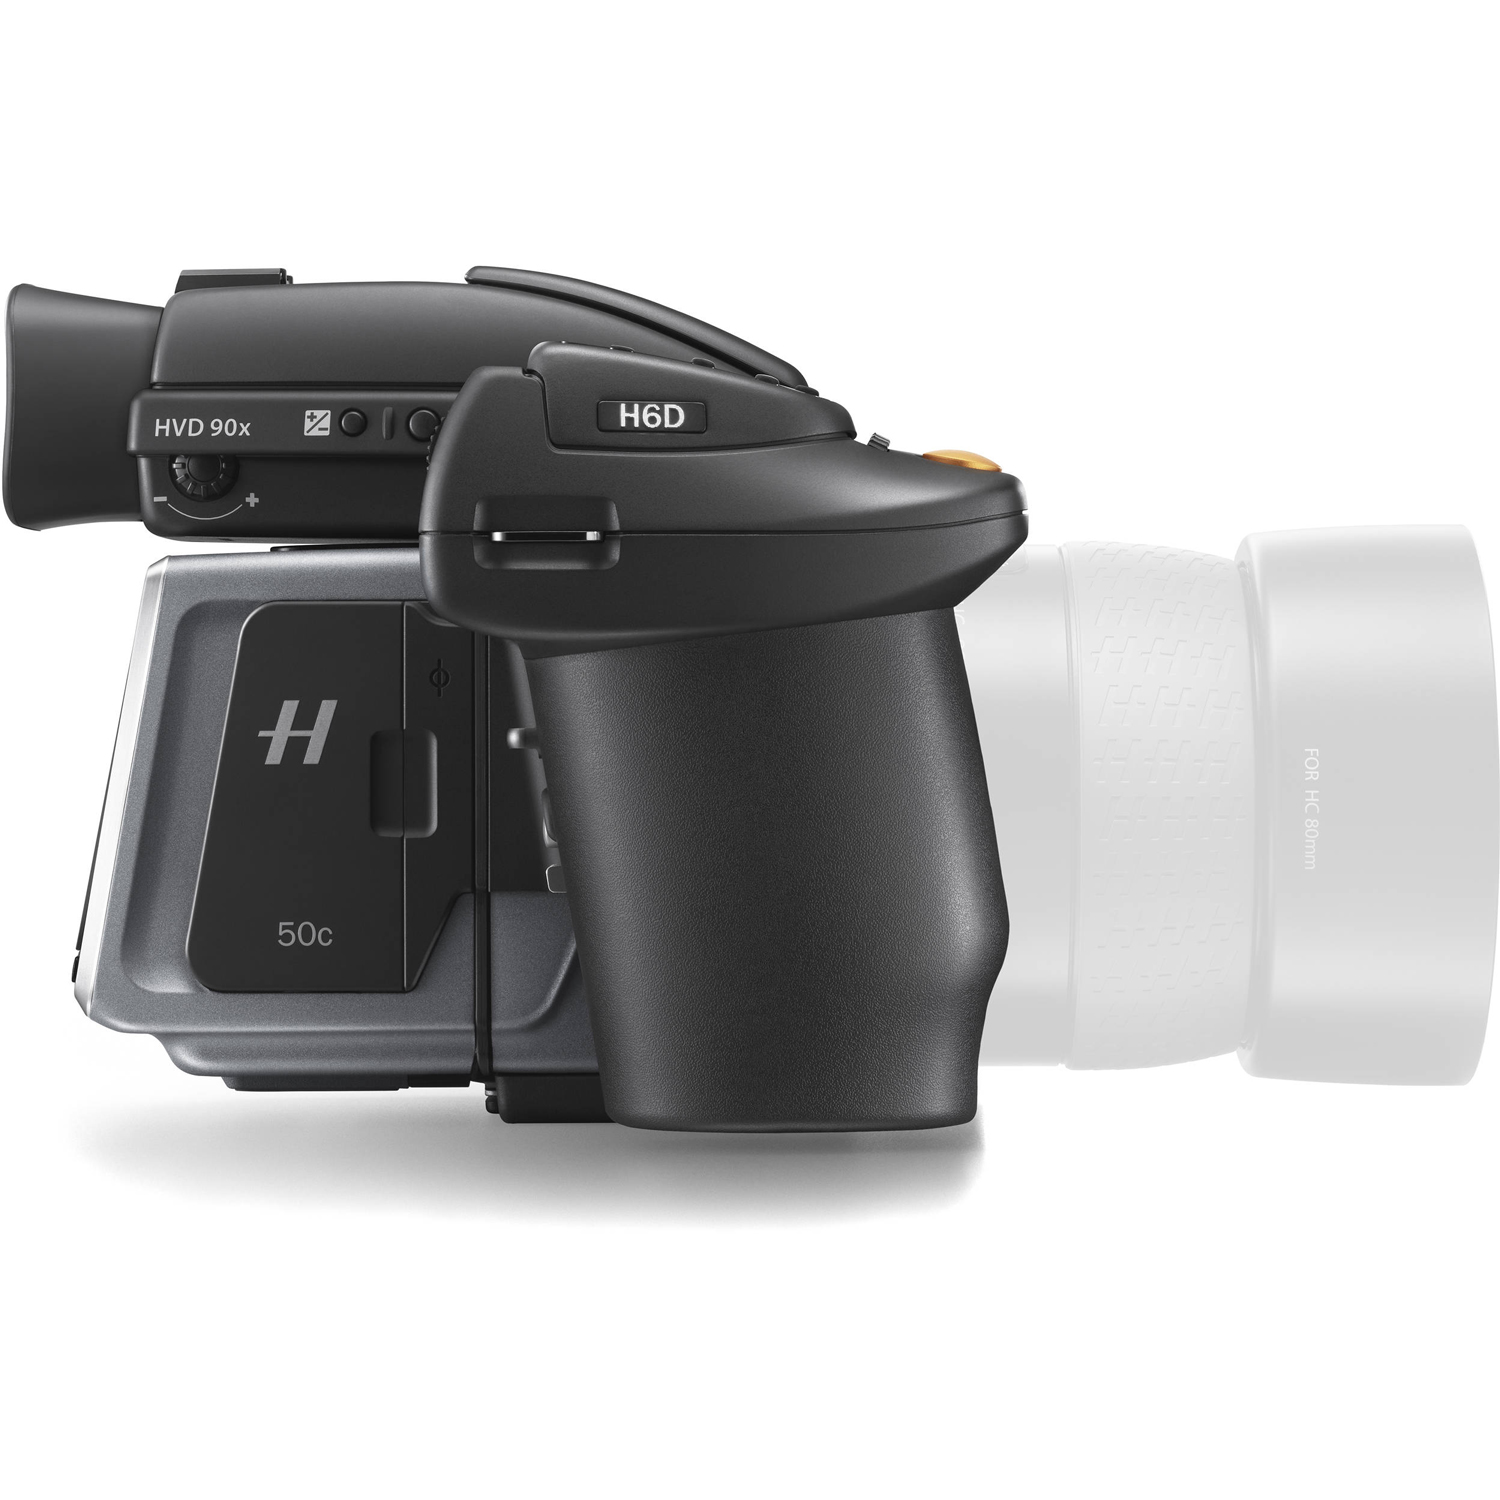 H6D-50c Medium Format Digital SLR Camera